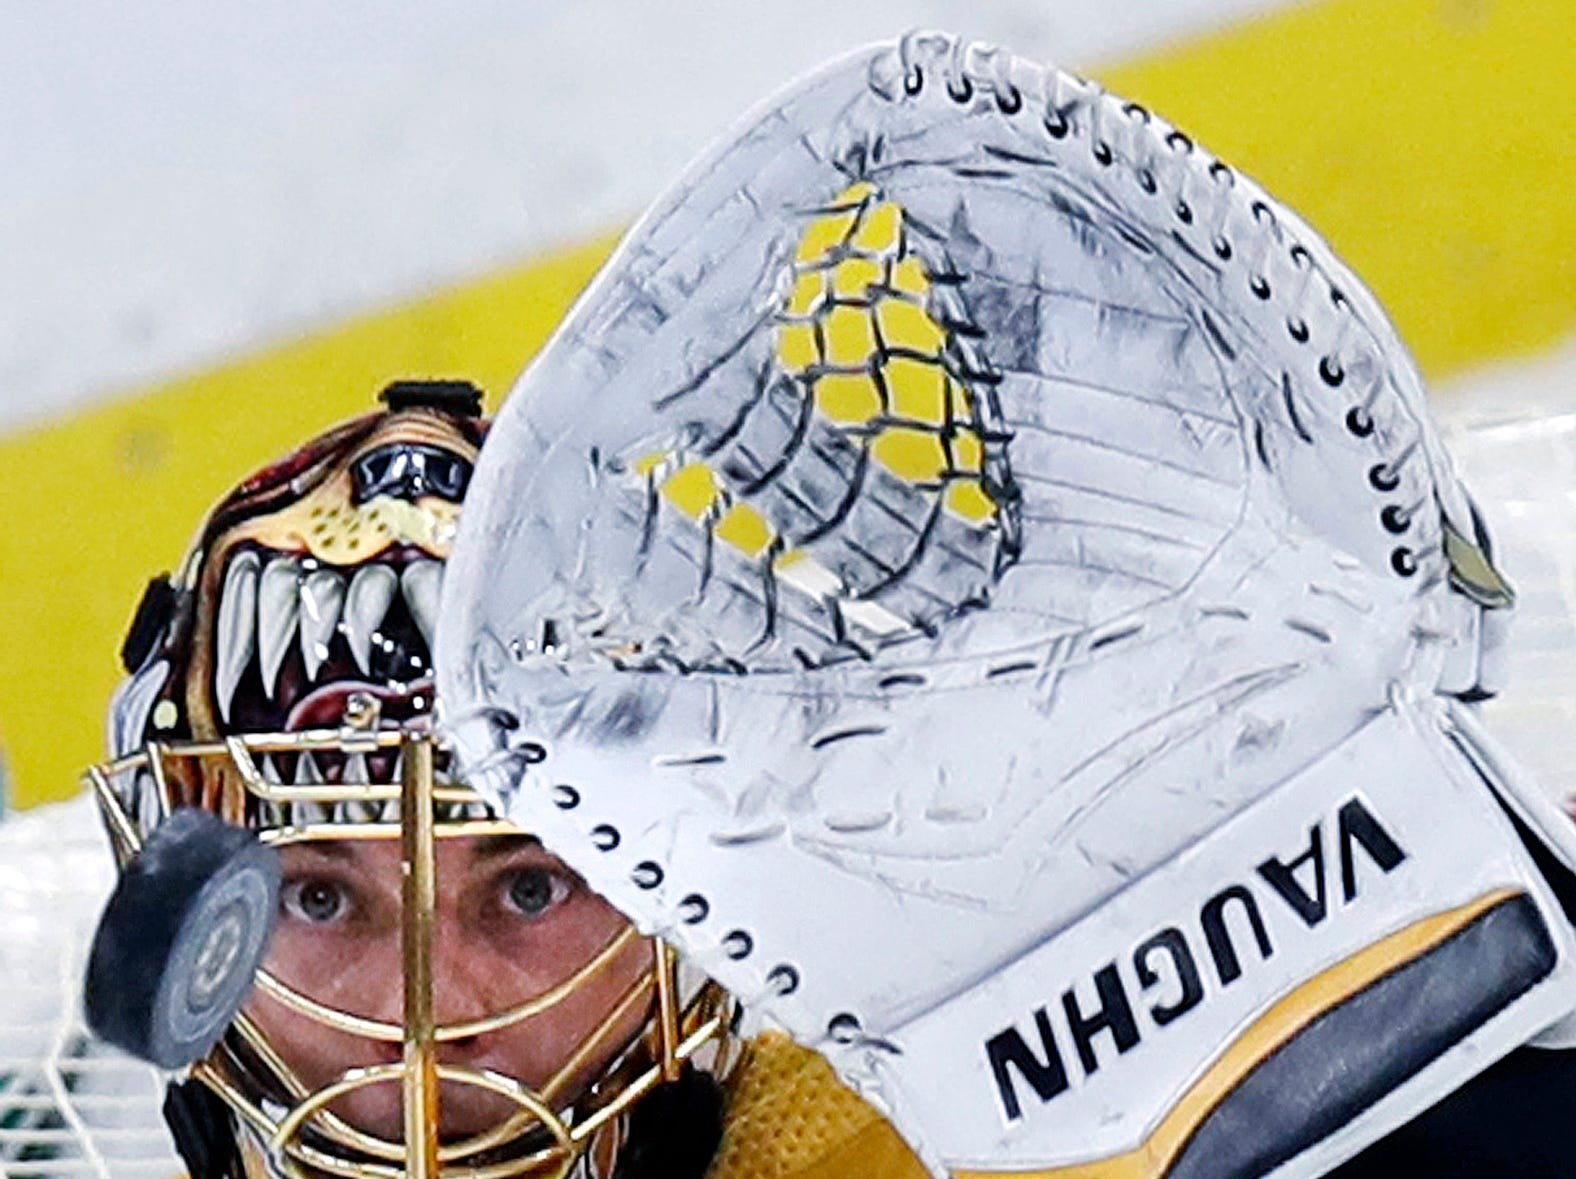 Boston Bruins goaltender Tuukka Rask eyes the puck on a save during the third period of an hockey game against the Arizona Coyotes in Boston, Tuesday, Dec. 11, 2018. (AP Photo/Charles Krupa)